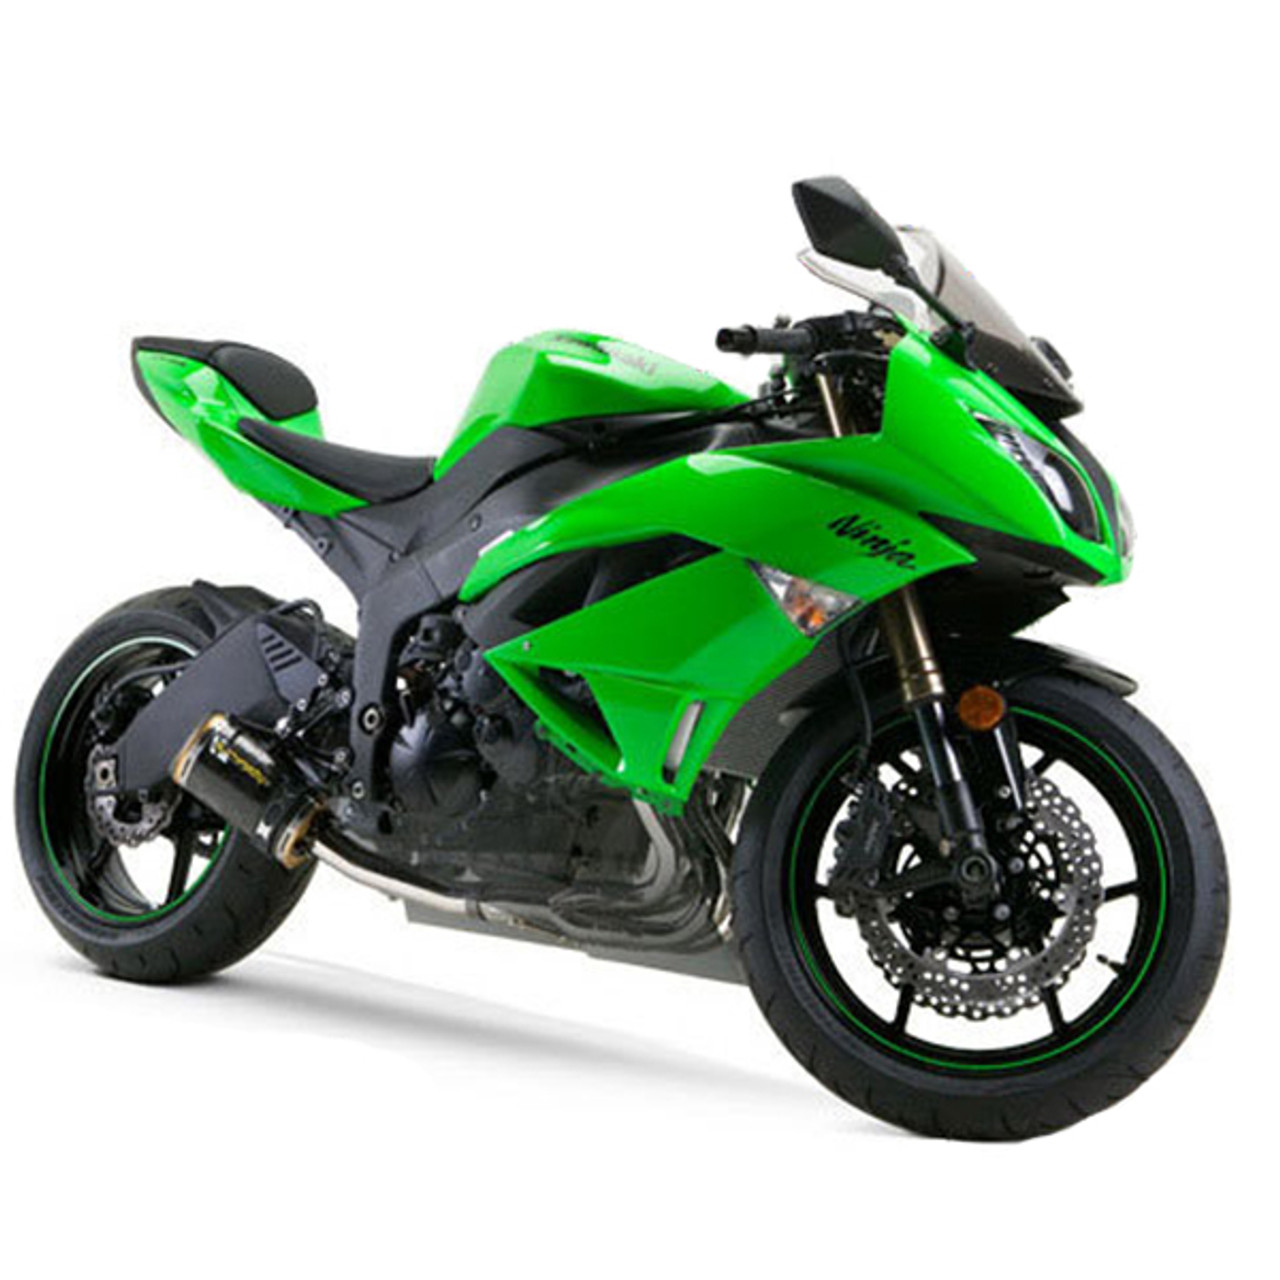 two brothers kawasaki zx 6r 09 21 m 2 full exhaust system